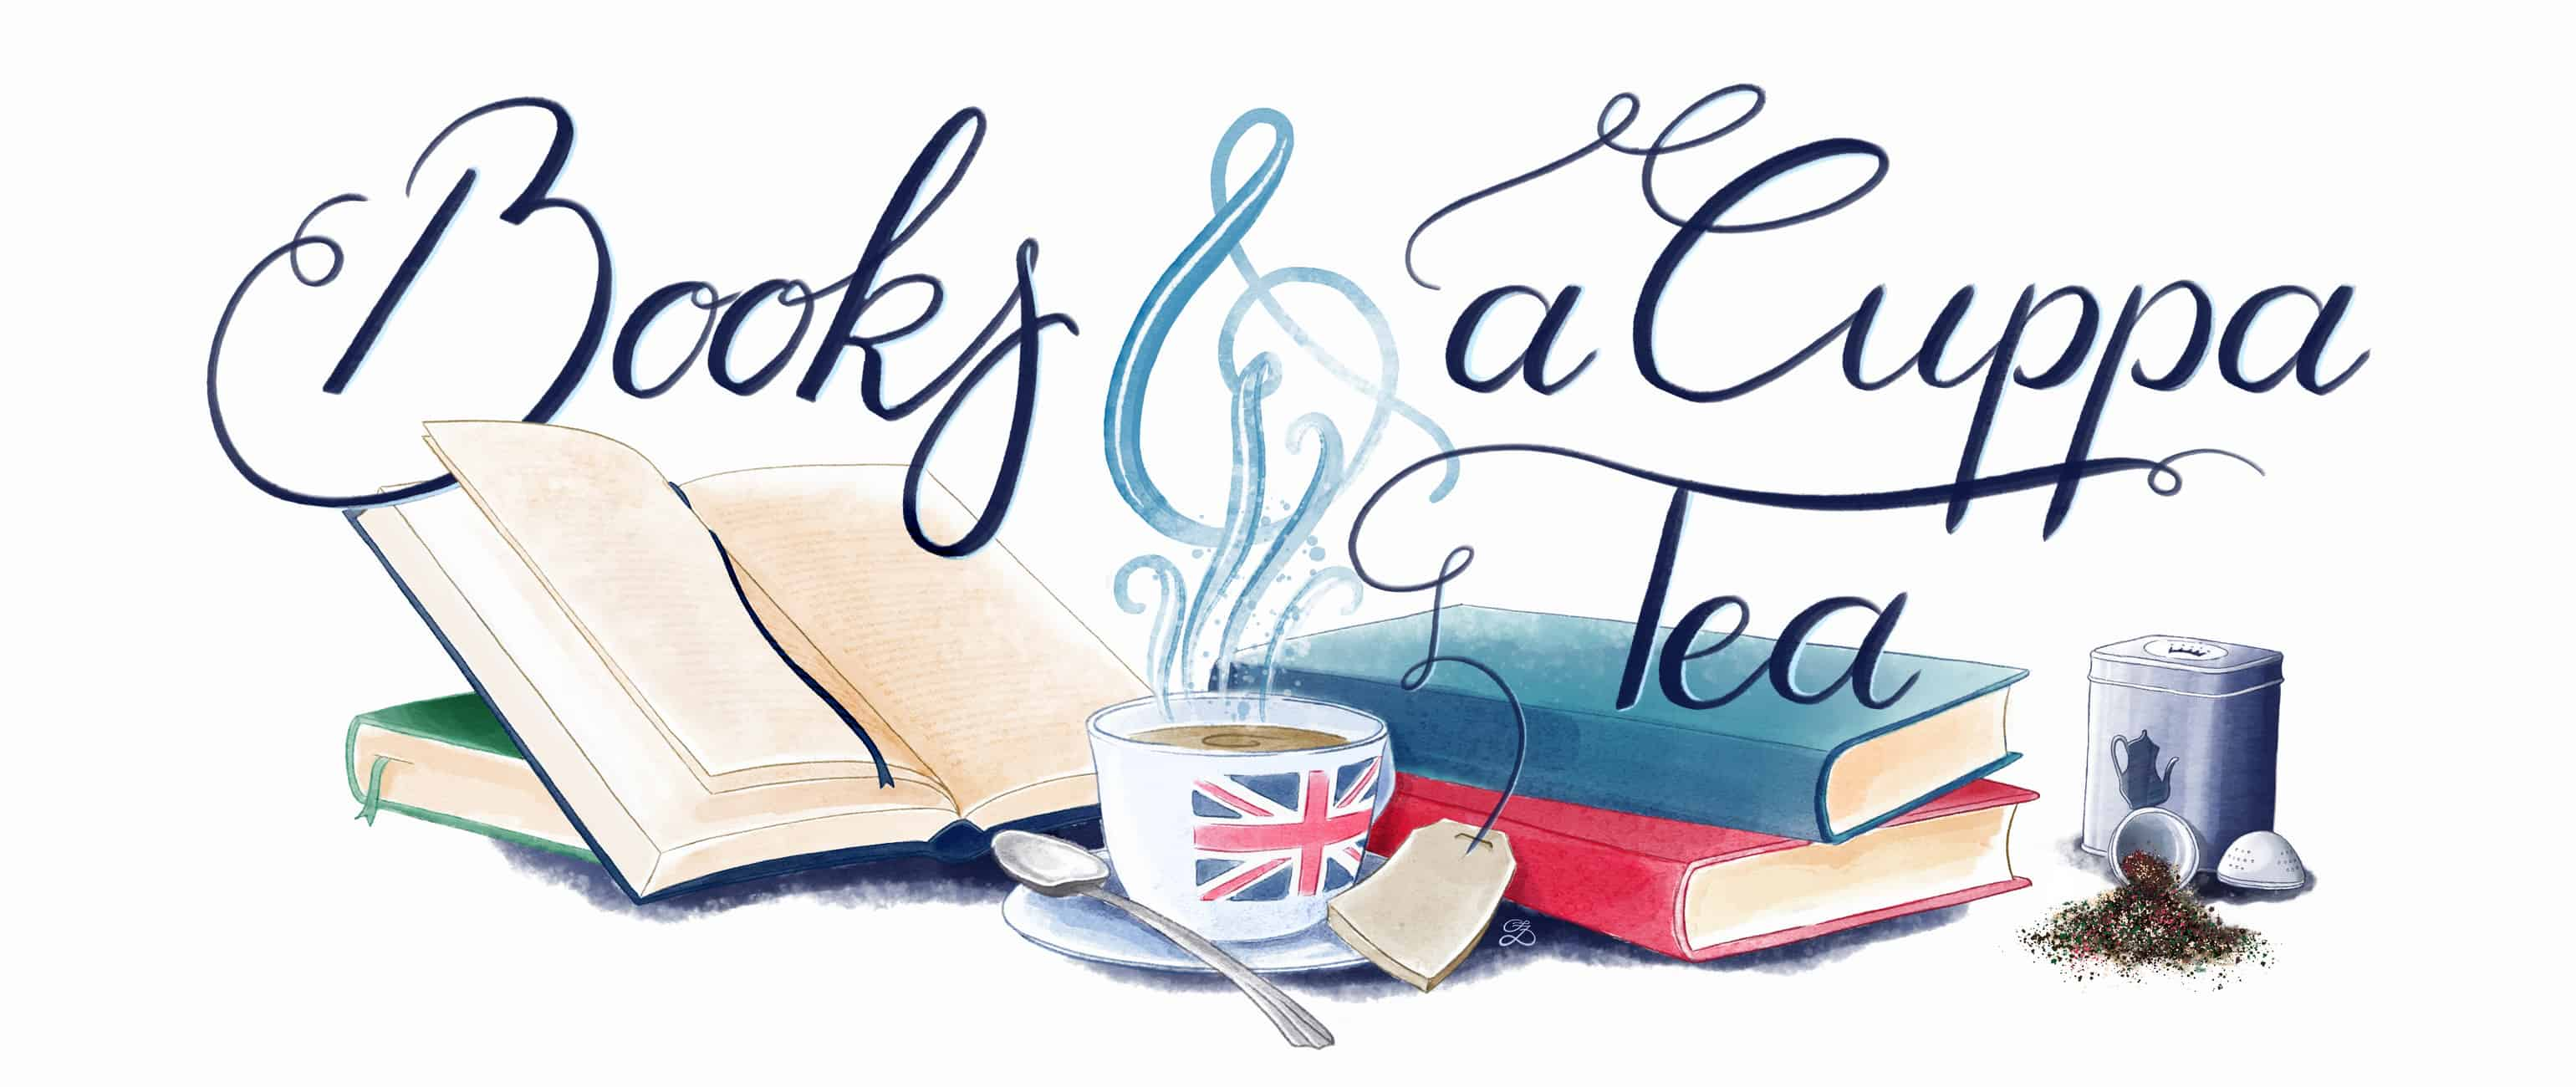 Books & a Cuppa Tea - Illustration Sandra Zabel, sandrazabel.de